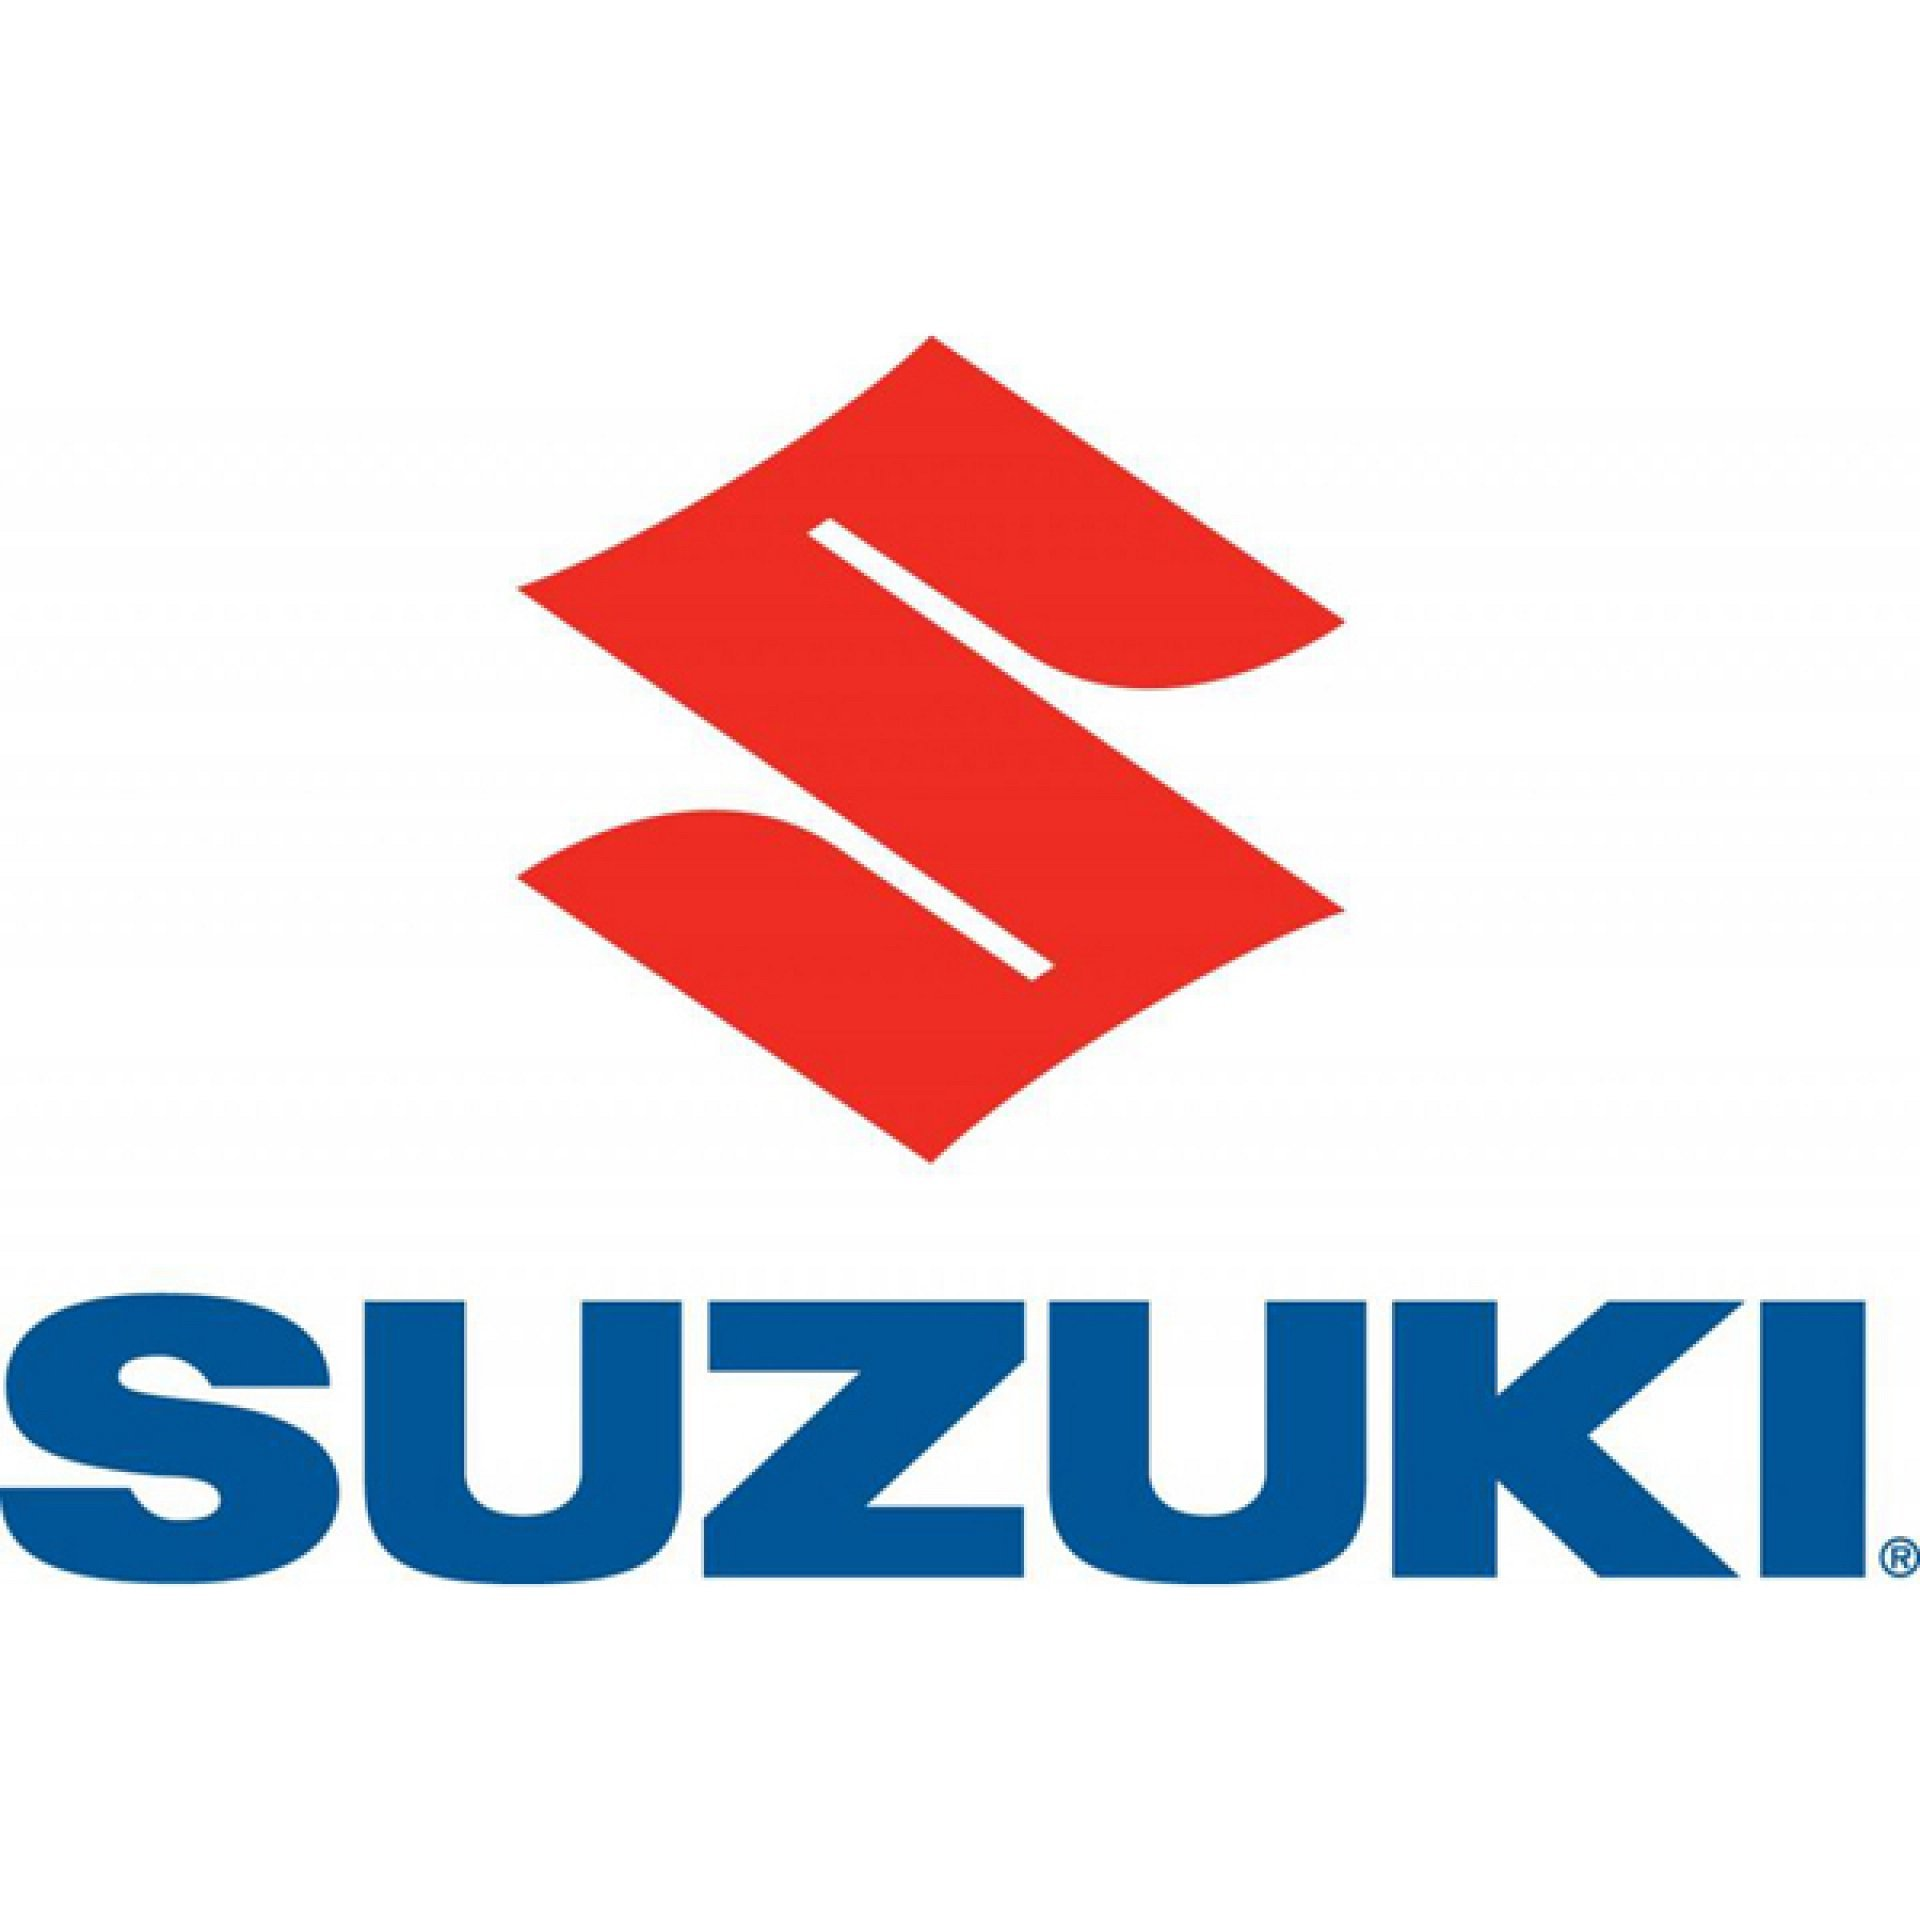 Suzuki Genuine Parts for sale